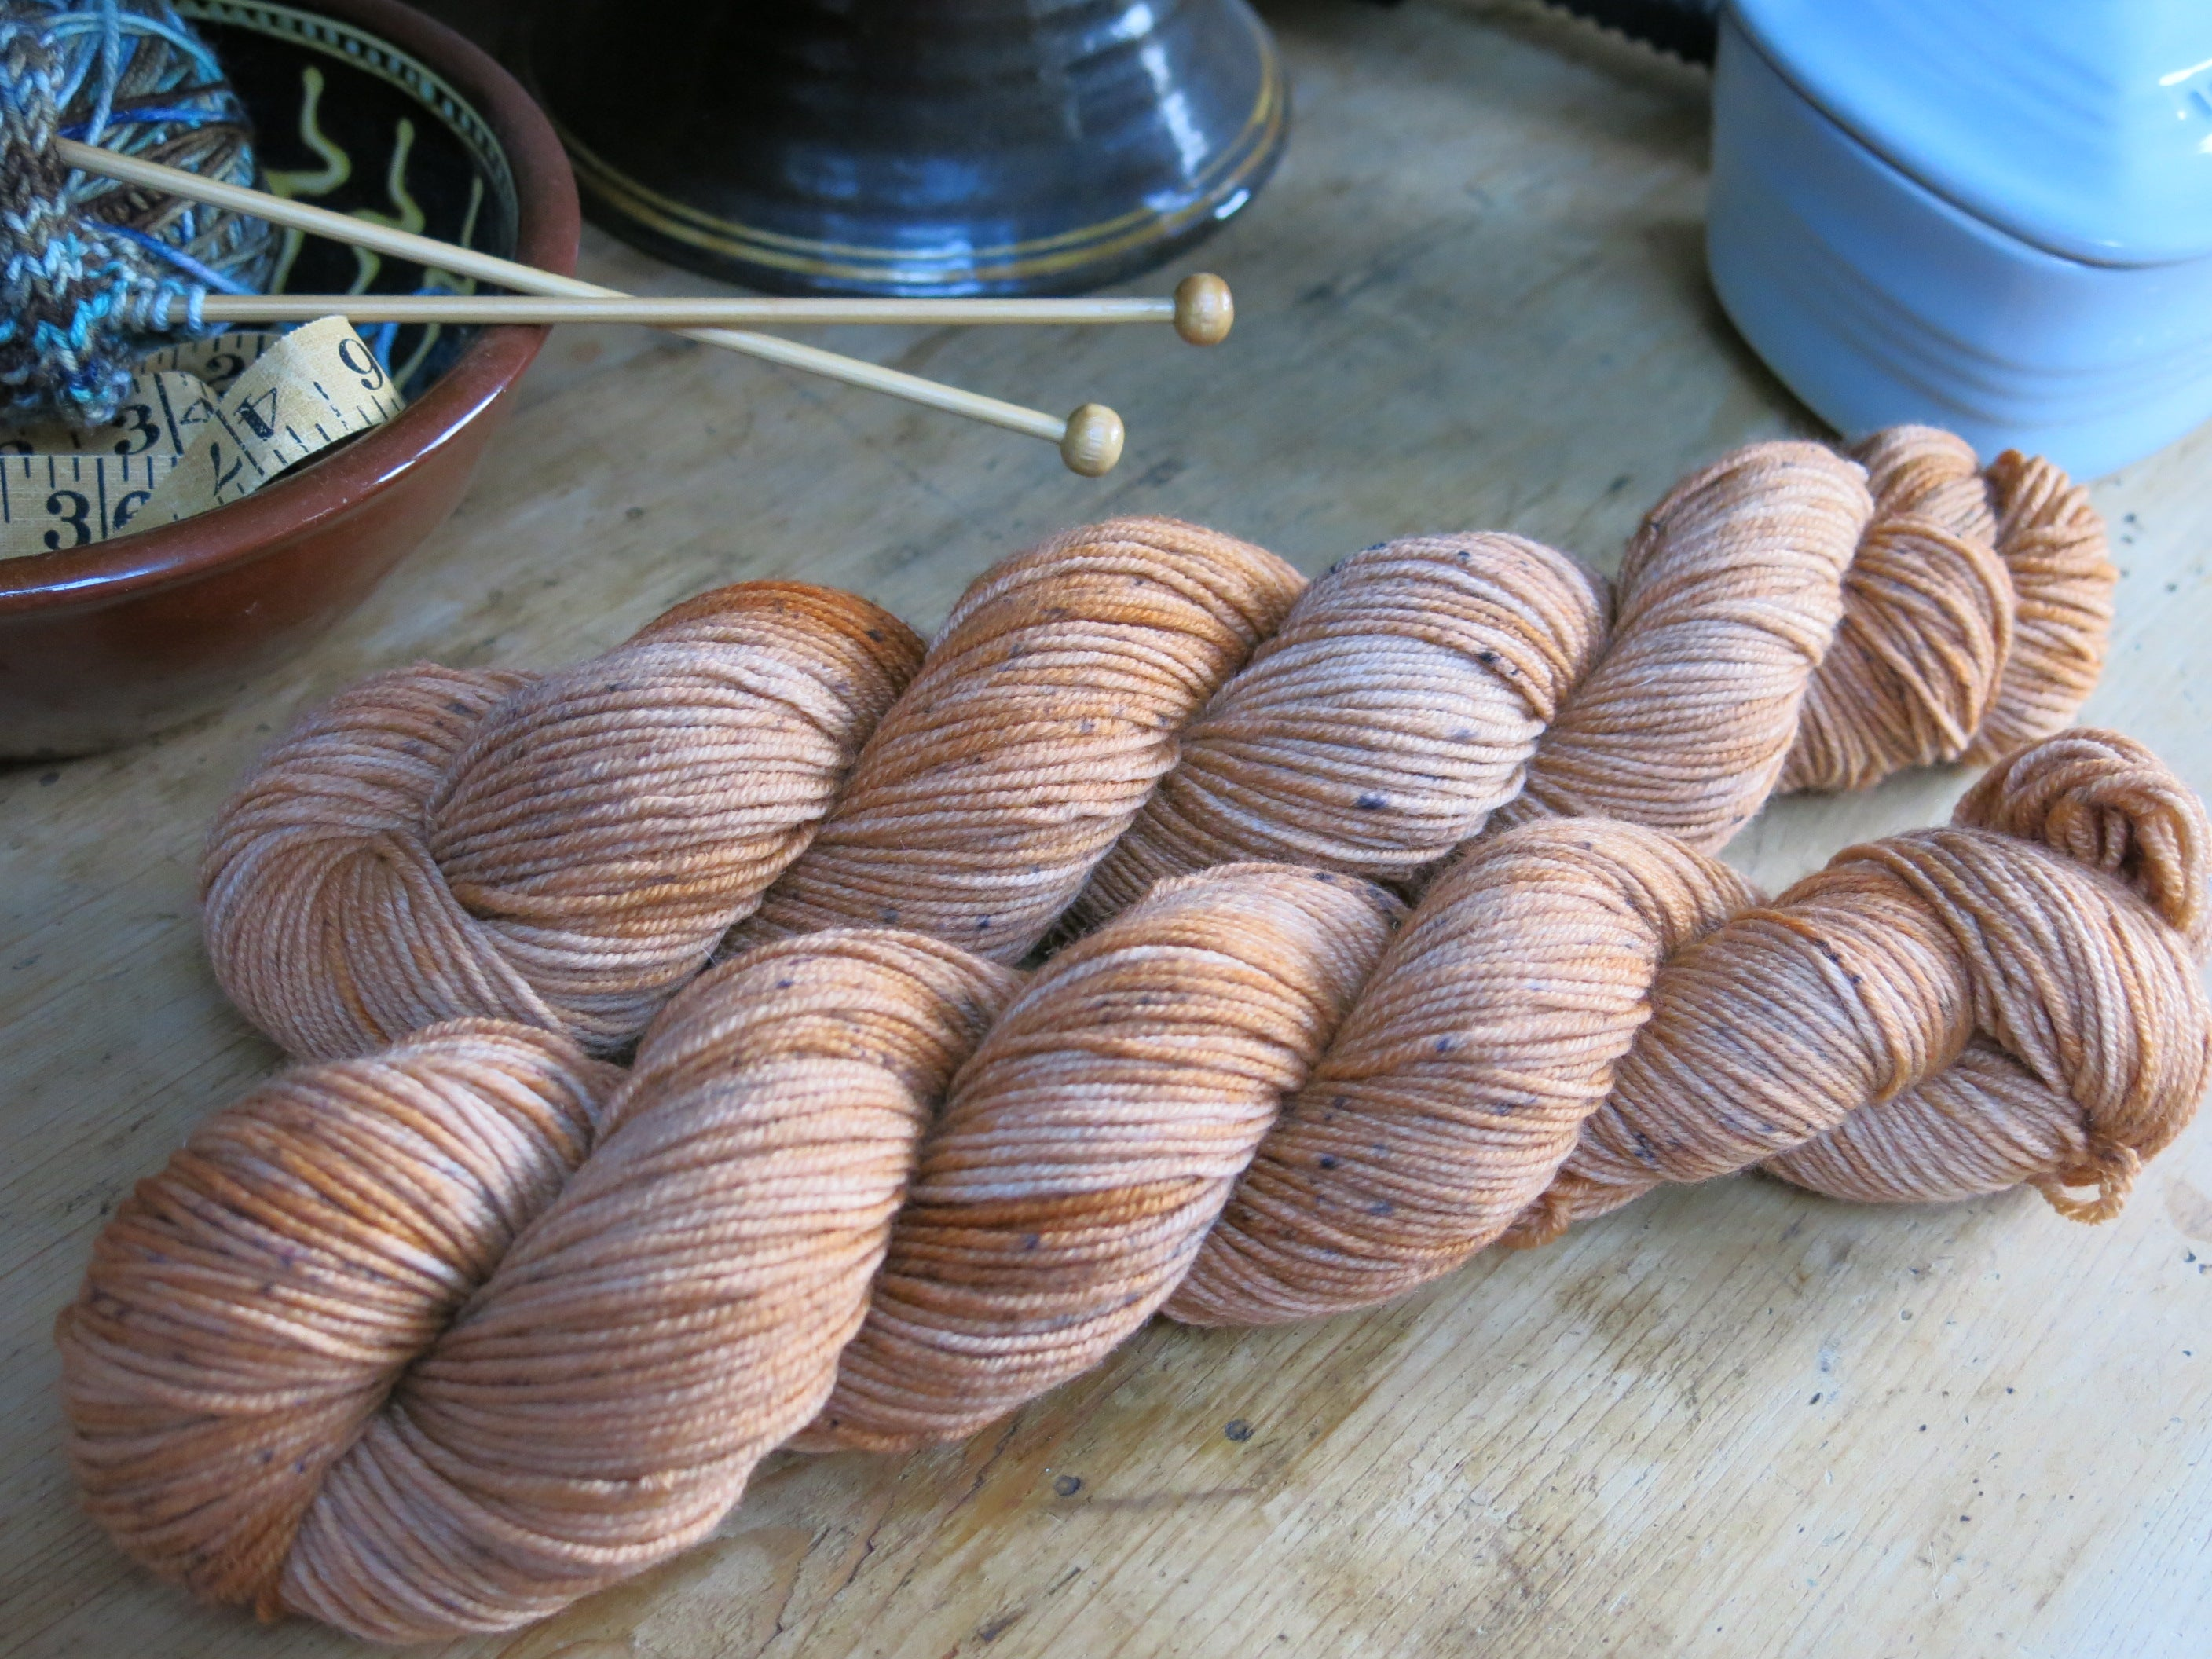 scottish whisky inspired speckled yarn skeins for knitting and crochet